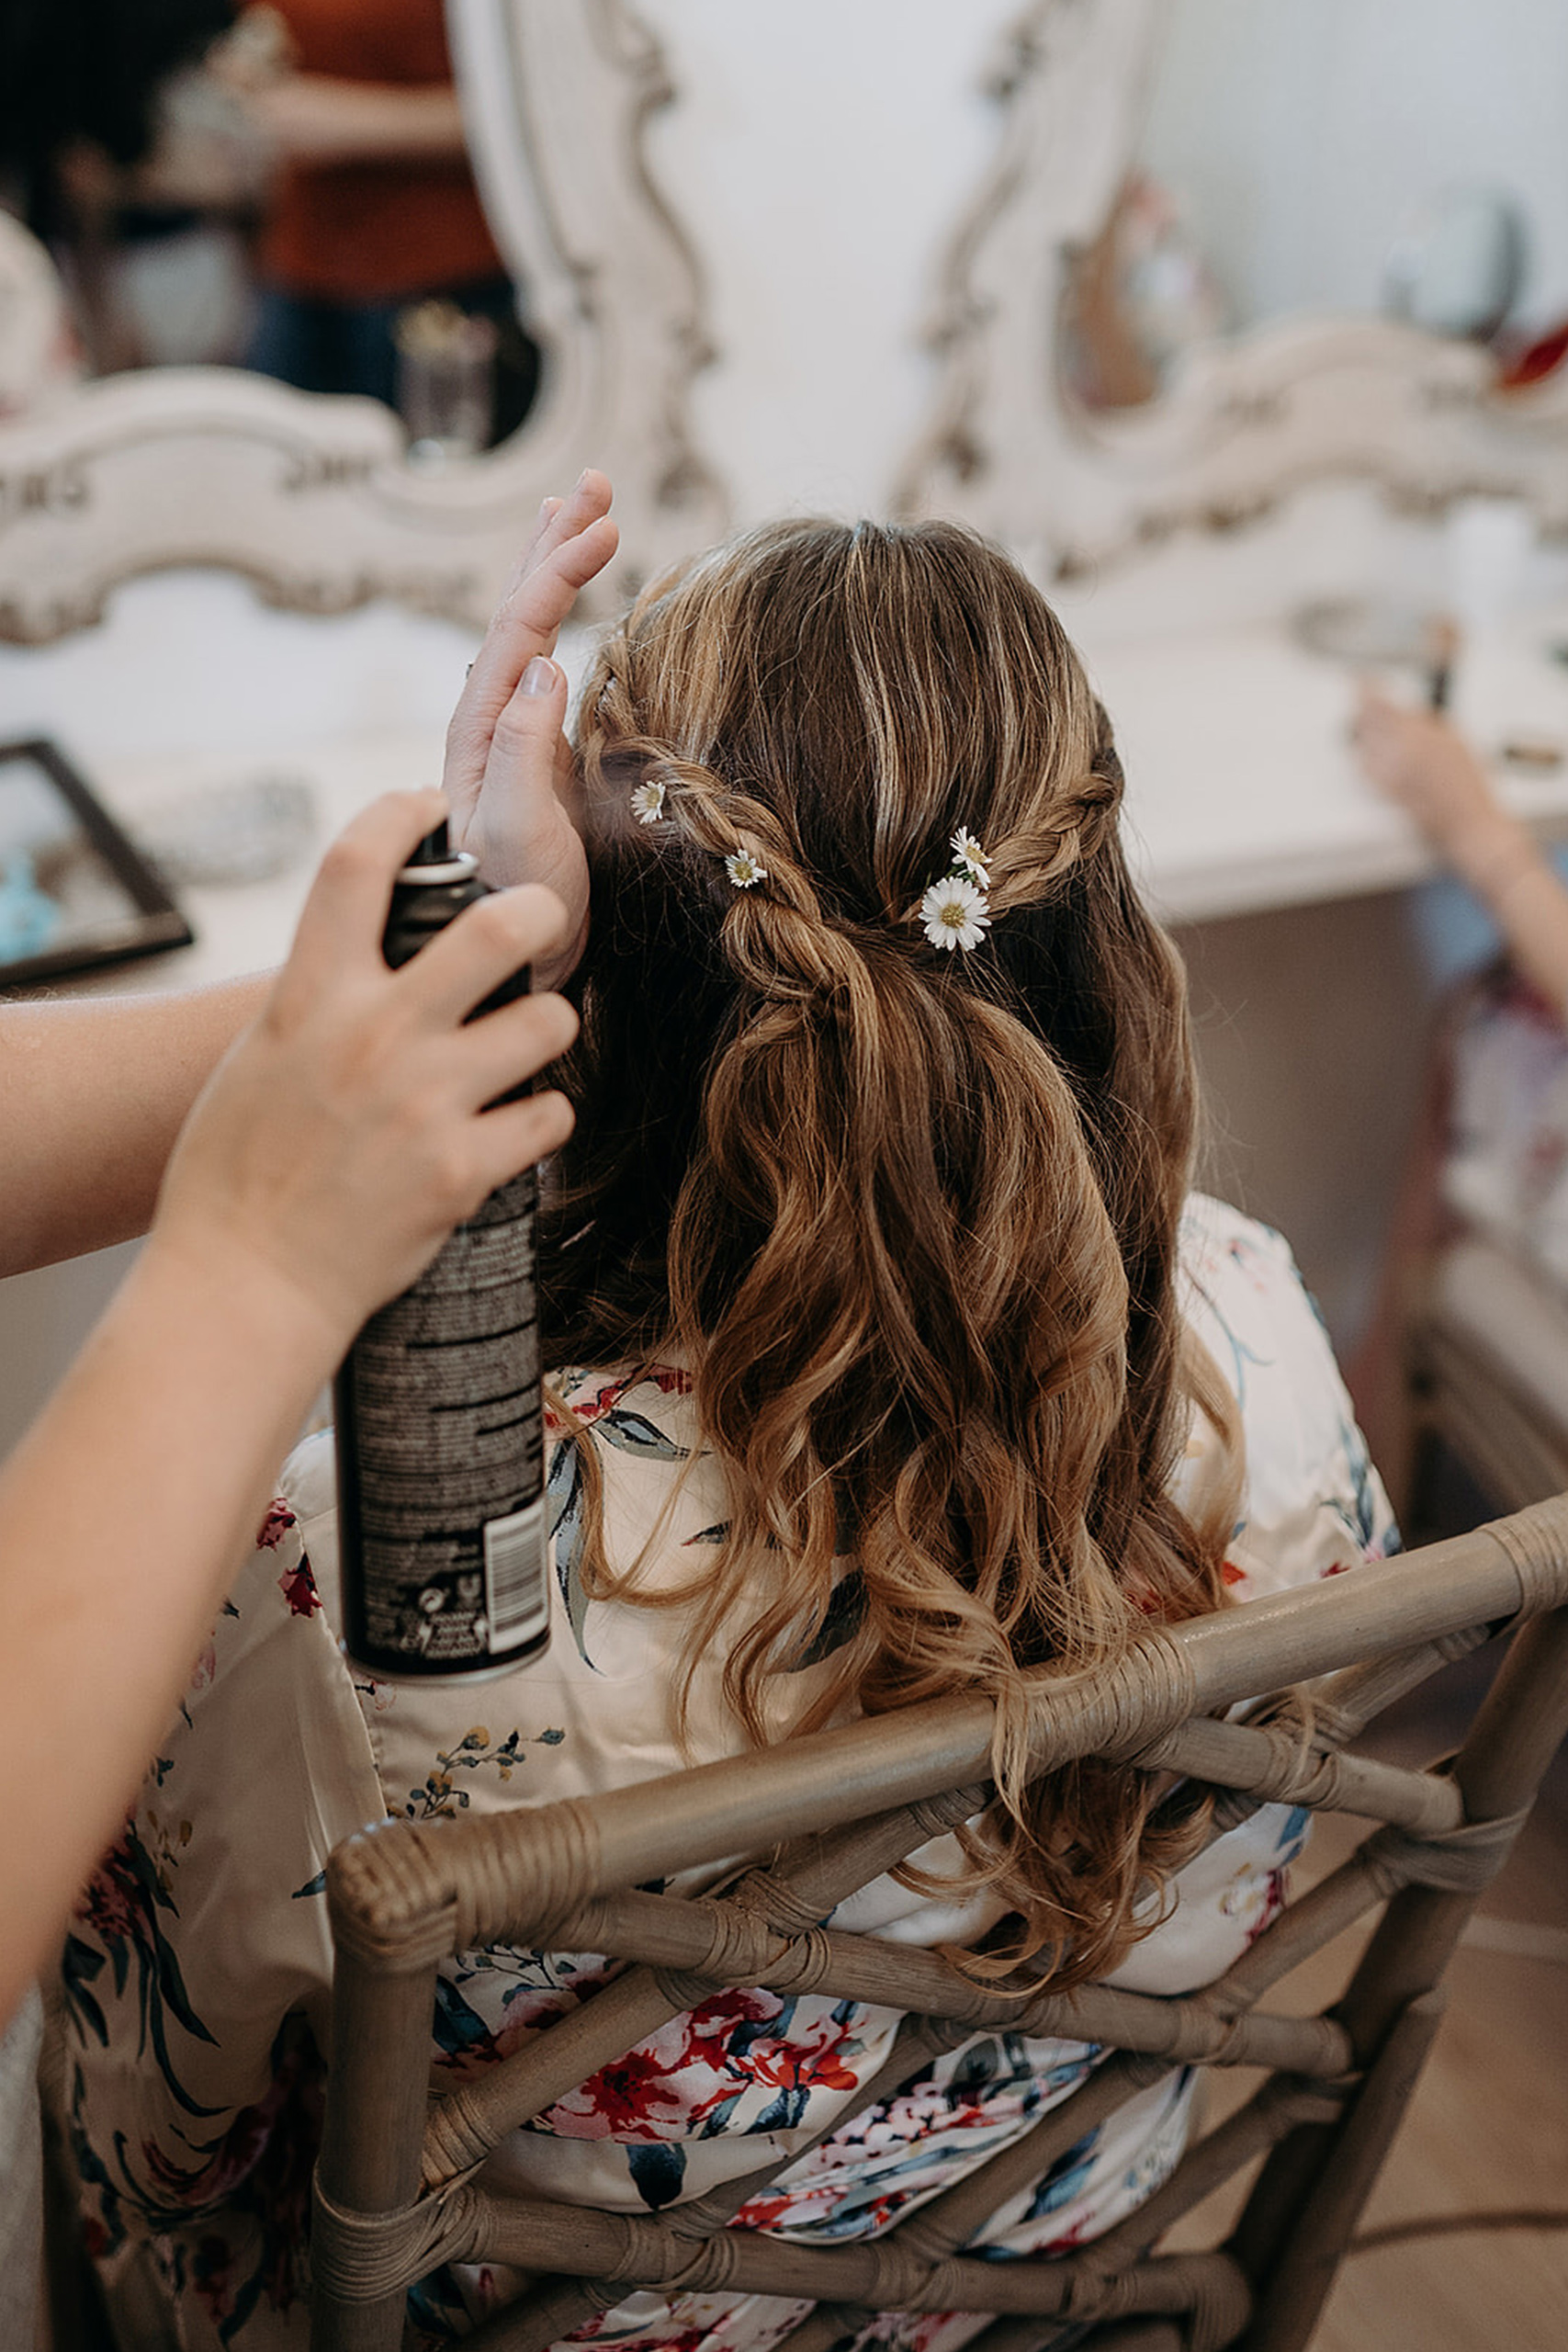 Belle's and Braid's Hair and Makeup Specialists